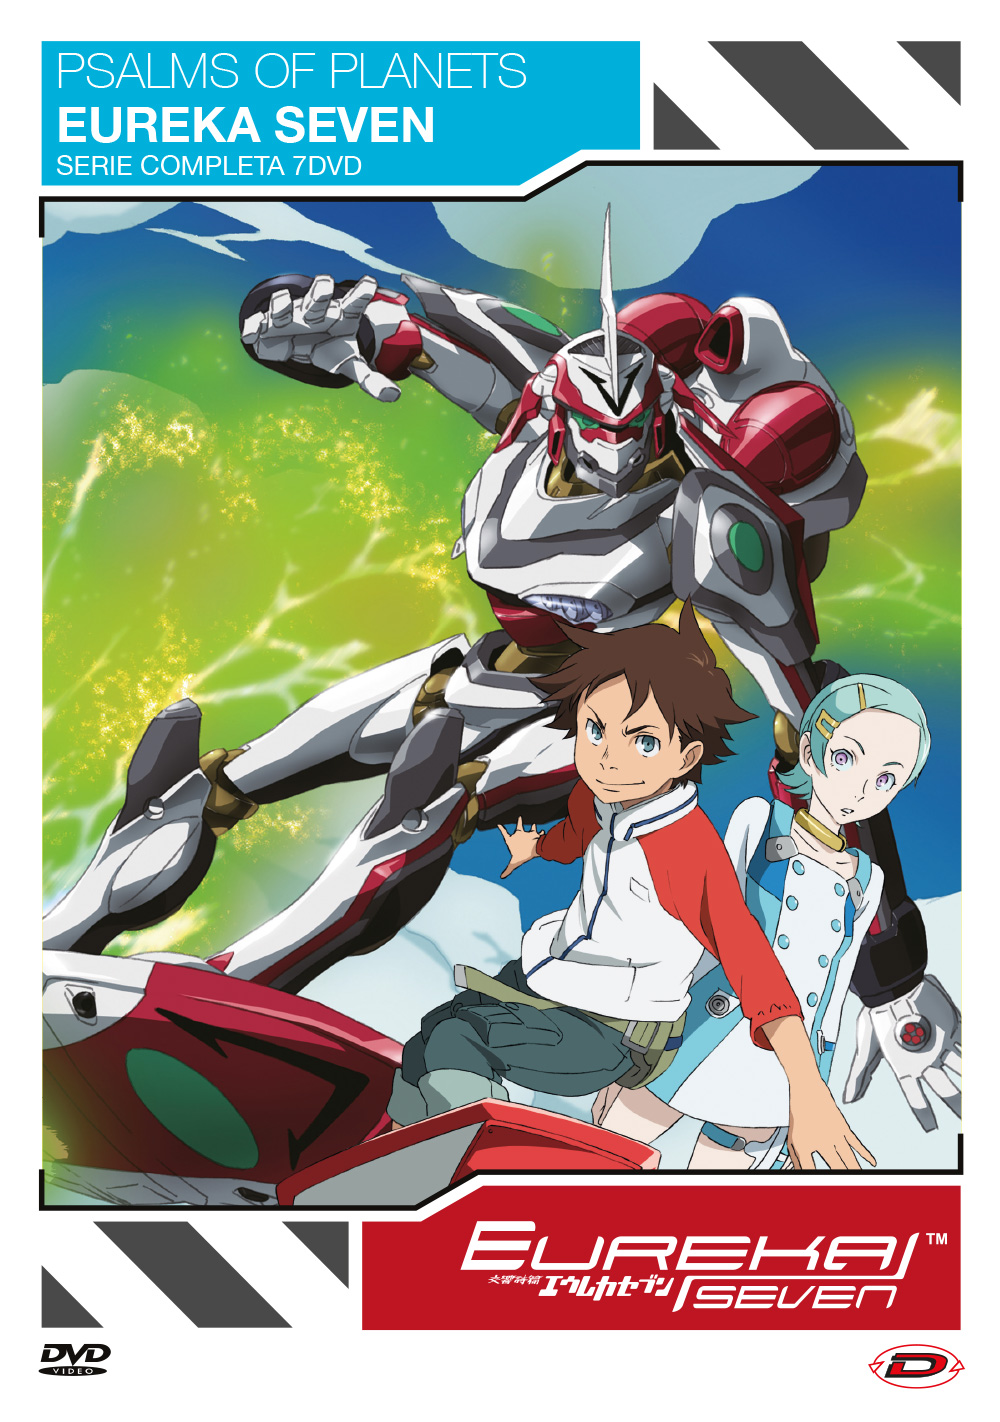 EUREKA SEVEN - THE COMPLETE SERIES (EPS 01-50) (7 DVD) (DVD)